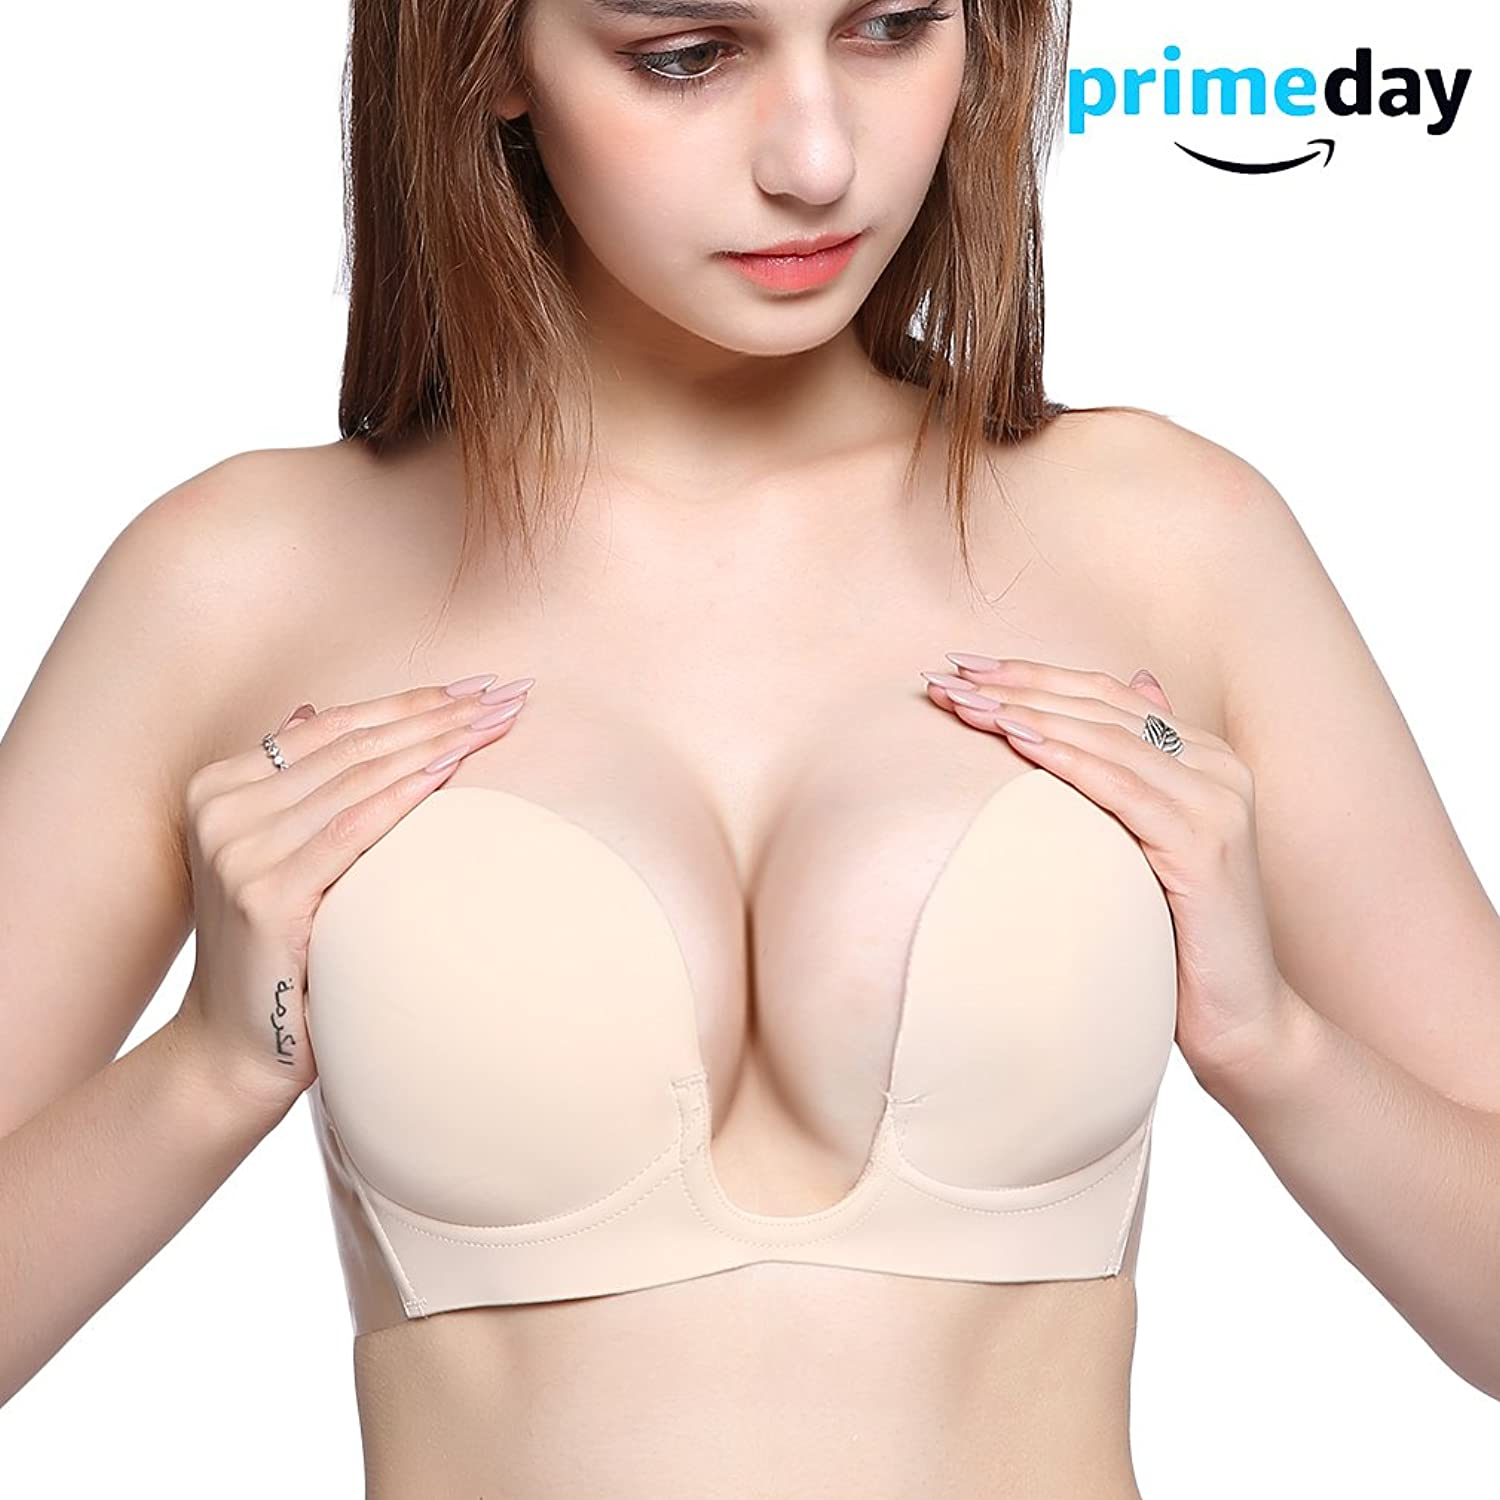 76460a422234e Comfortable and supportive stick-on strapless bra with smooth fabric  .Absolutely breathable silky and comfortable invisible bra gives an  backless strapless ...